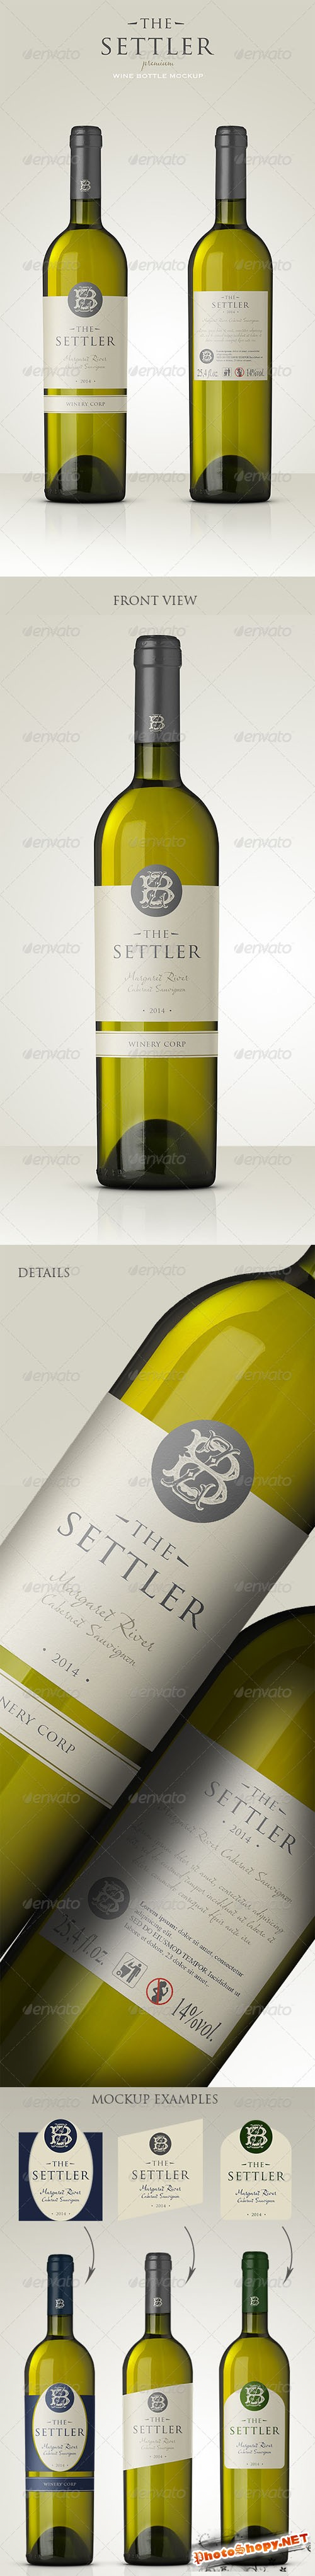 Premium White Wine Mockup - Graphicriver 6747948